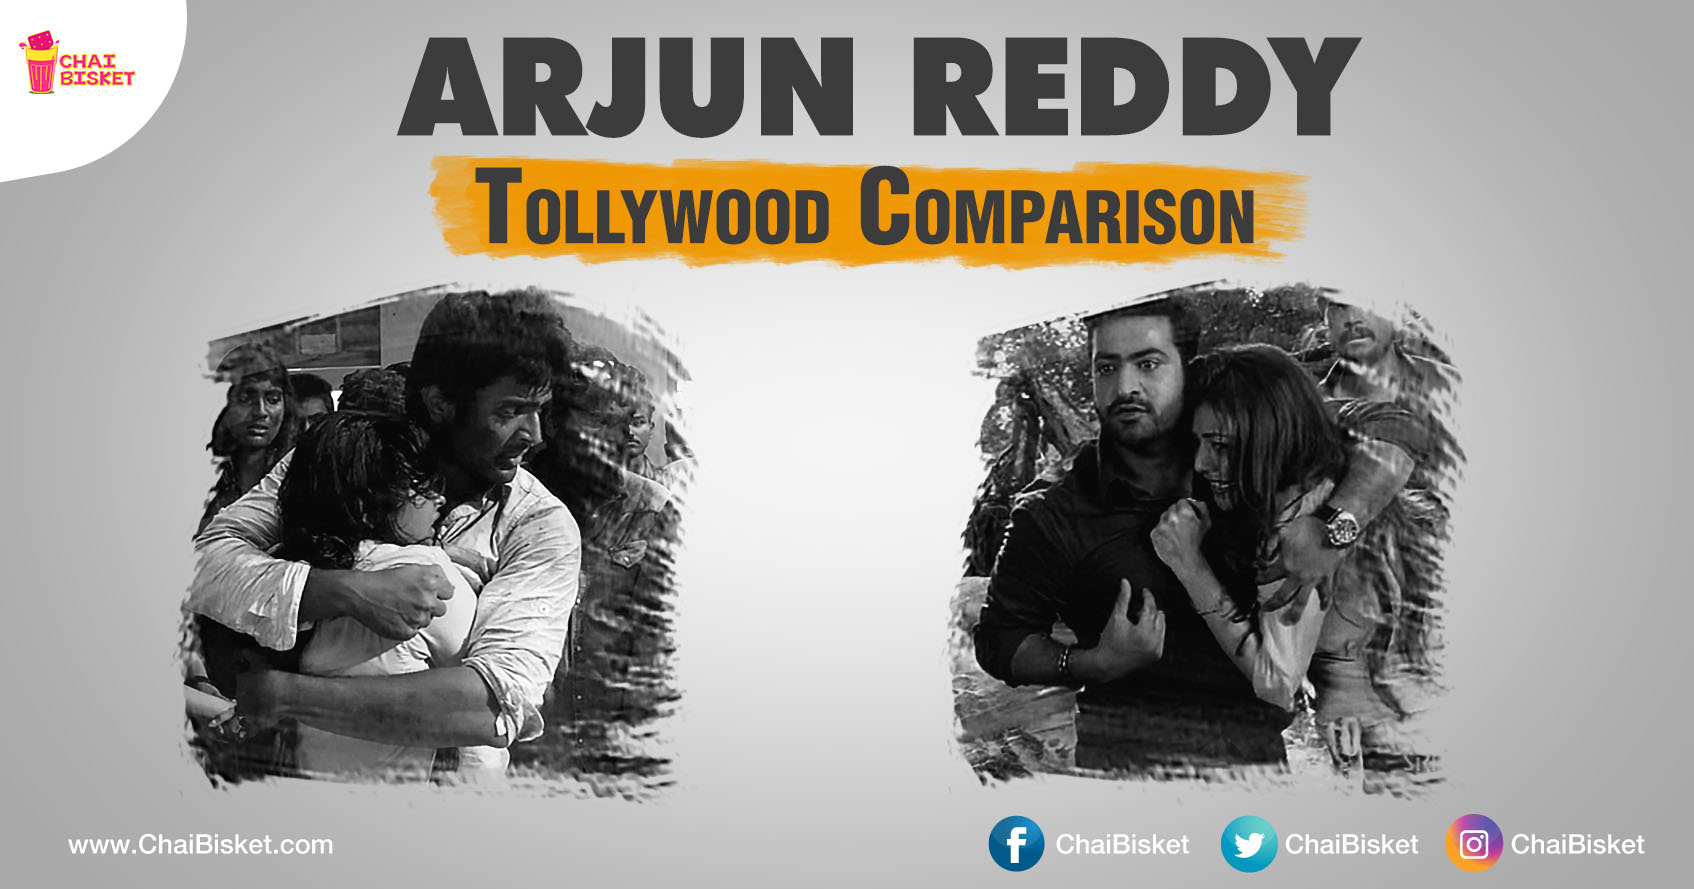 What If     Arjun Reddy Dialogues Were Used For Similar Type